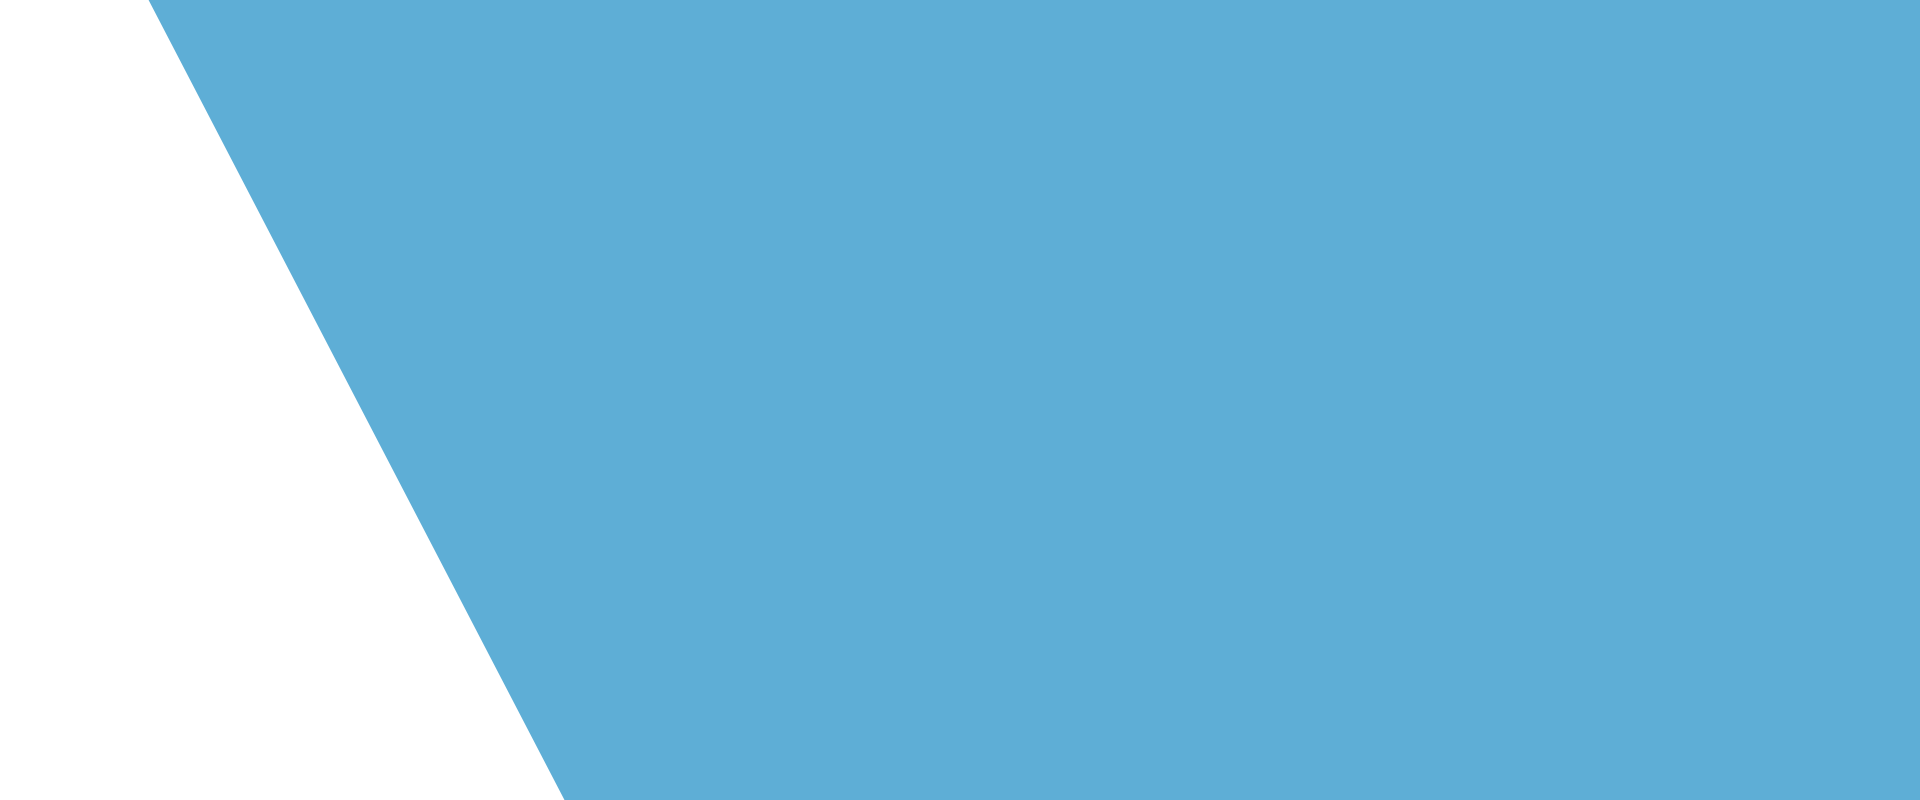 Middle_Blue